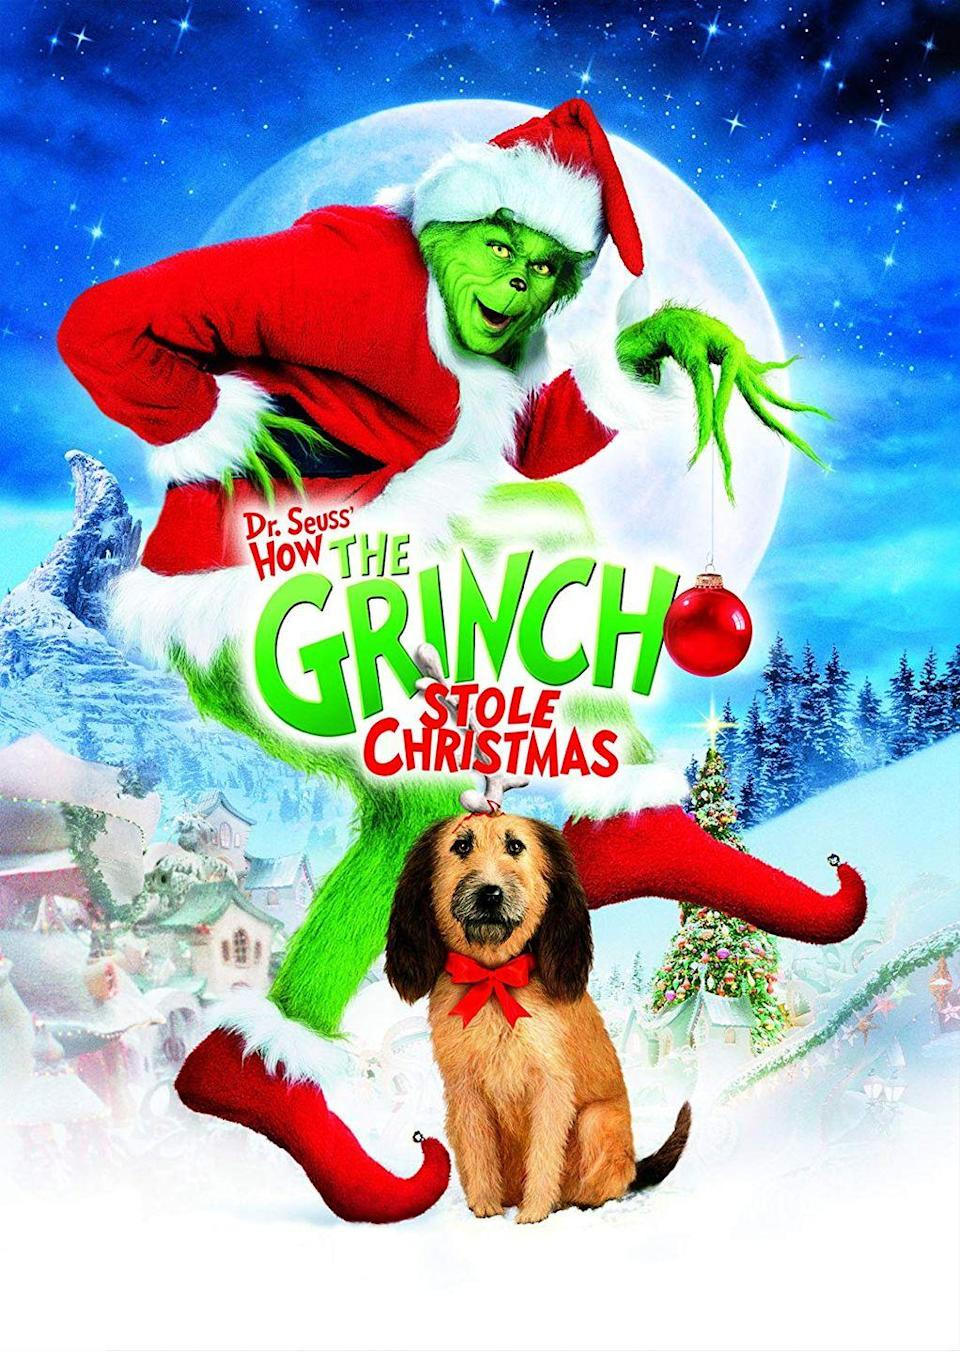 """<p>The Grinch finally got a live-action, feature-length film in 2000 when Jim Carrey took the lead in this whimsical Christmas tale.</p><p><a class=""""link rapid-noclick-resp"""" href=""""https://www.amazon.com/Dr-Seuss-Grinch-Stole-Christmas/dp/B009CG9LZI/?tag=syn-yahoo-20&ascsubtag=%5Bartid%7C10055.g.1315%5Bsrc%7Cyahoo-us"""" rel=""""nofollow noopener"""" target=""""_blank"""" data-ylk=""""slk:WATCH NOW"""">WATCH NOW</a></p>"""